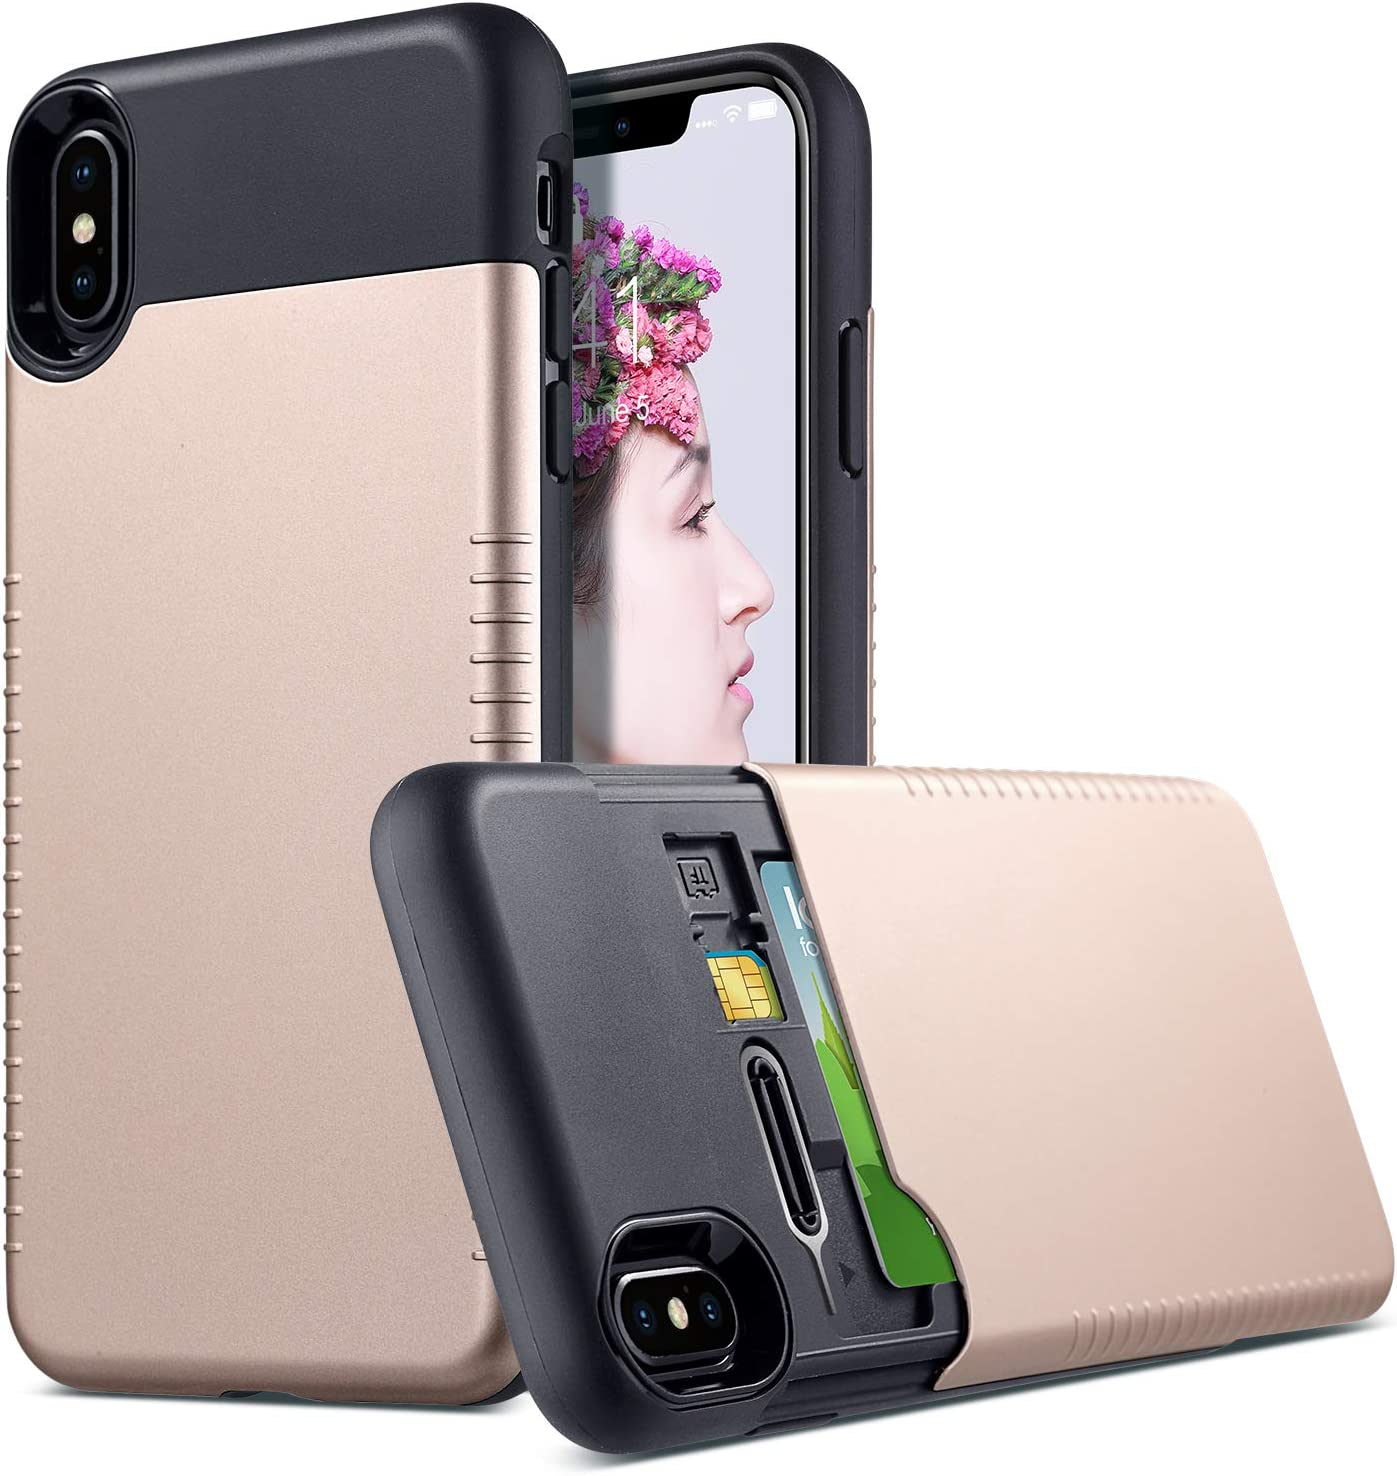 ULAK iPhone Xs Max Case, Slim Stealth Wallet Case with Hidden Card Holder and SIM Card Slots Anti-Slip Hybrid Shockproof TPU Bumper Protective Cover for iPhone Xs Max 6.5 inch (Gold + Black)